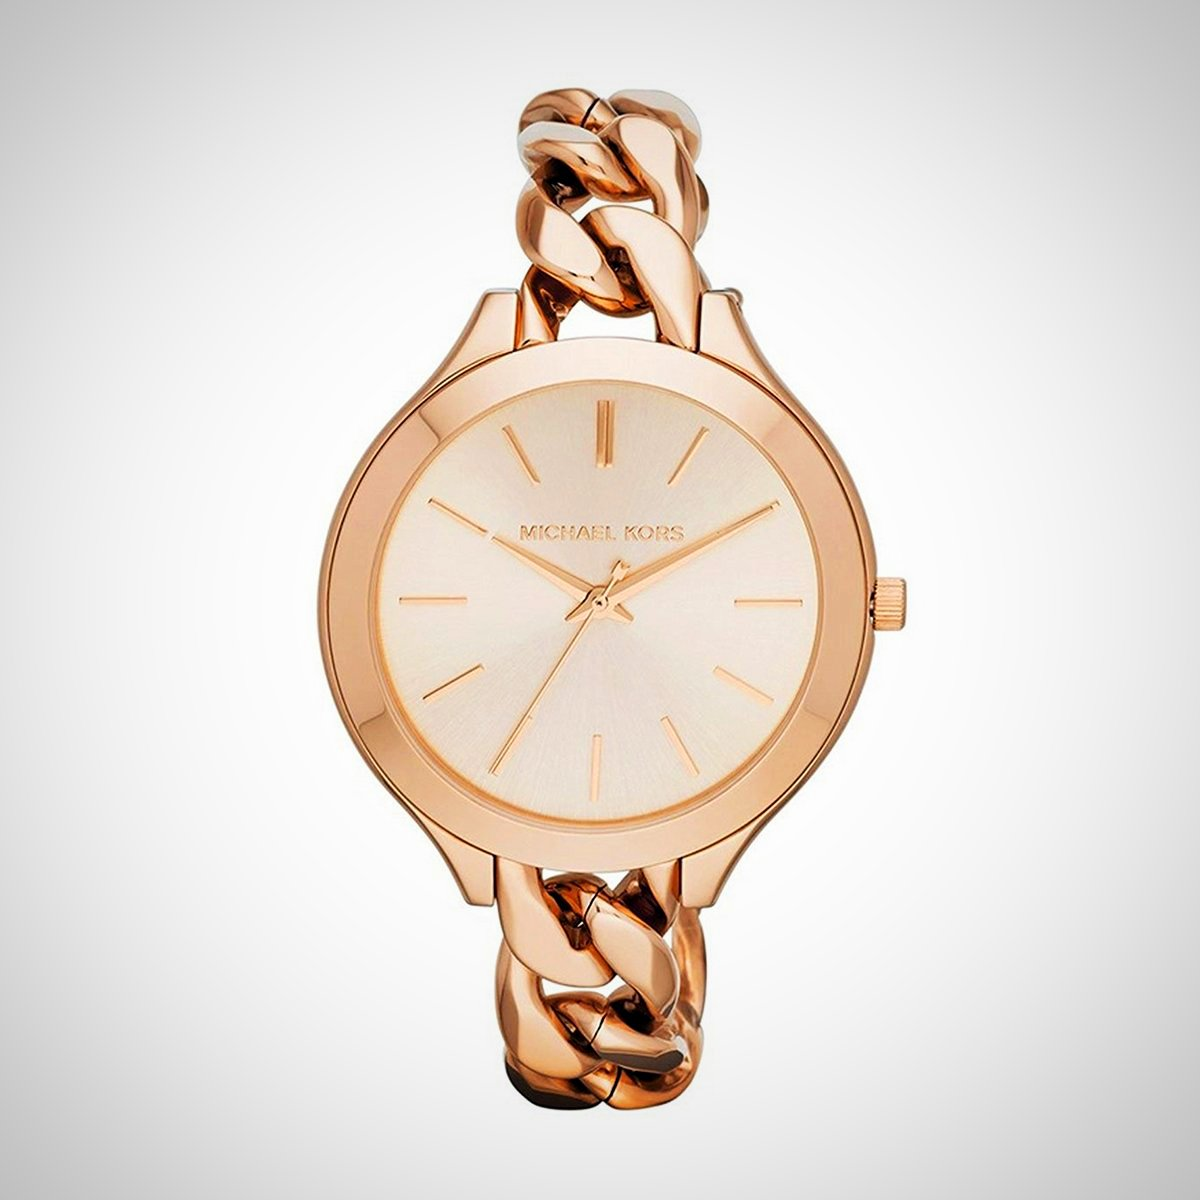 Michael Kors MK3223 Slim Landebahn Twist Rose Gold Watch